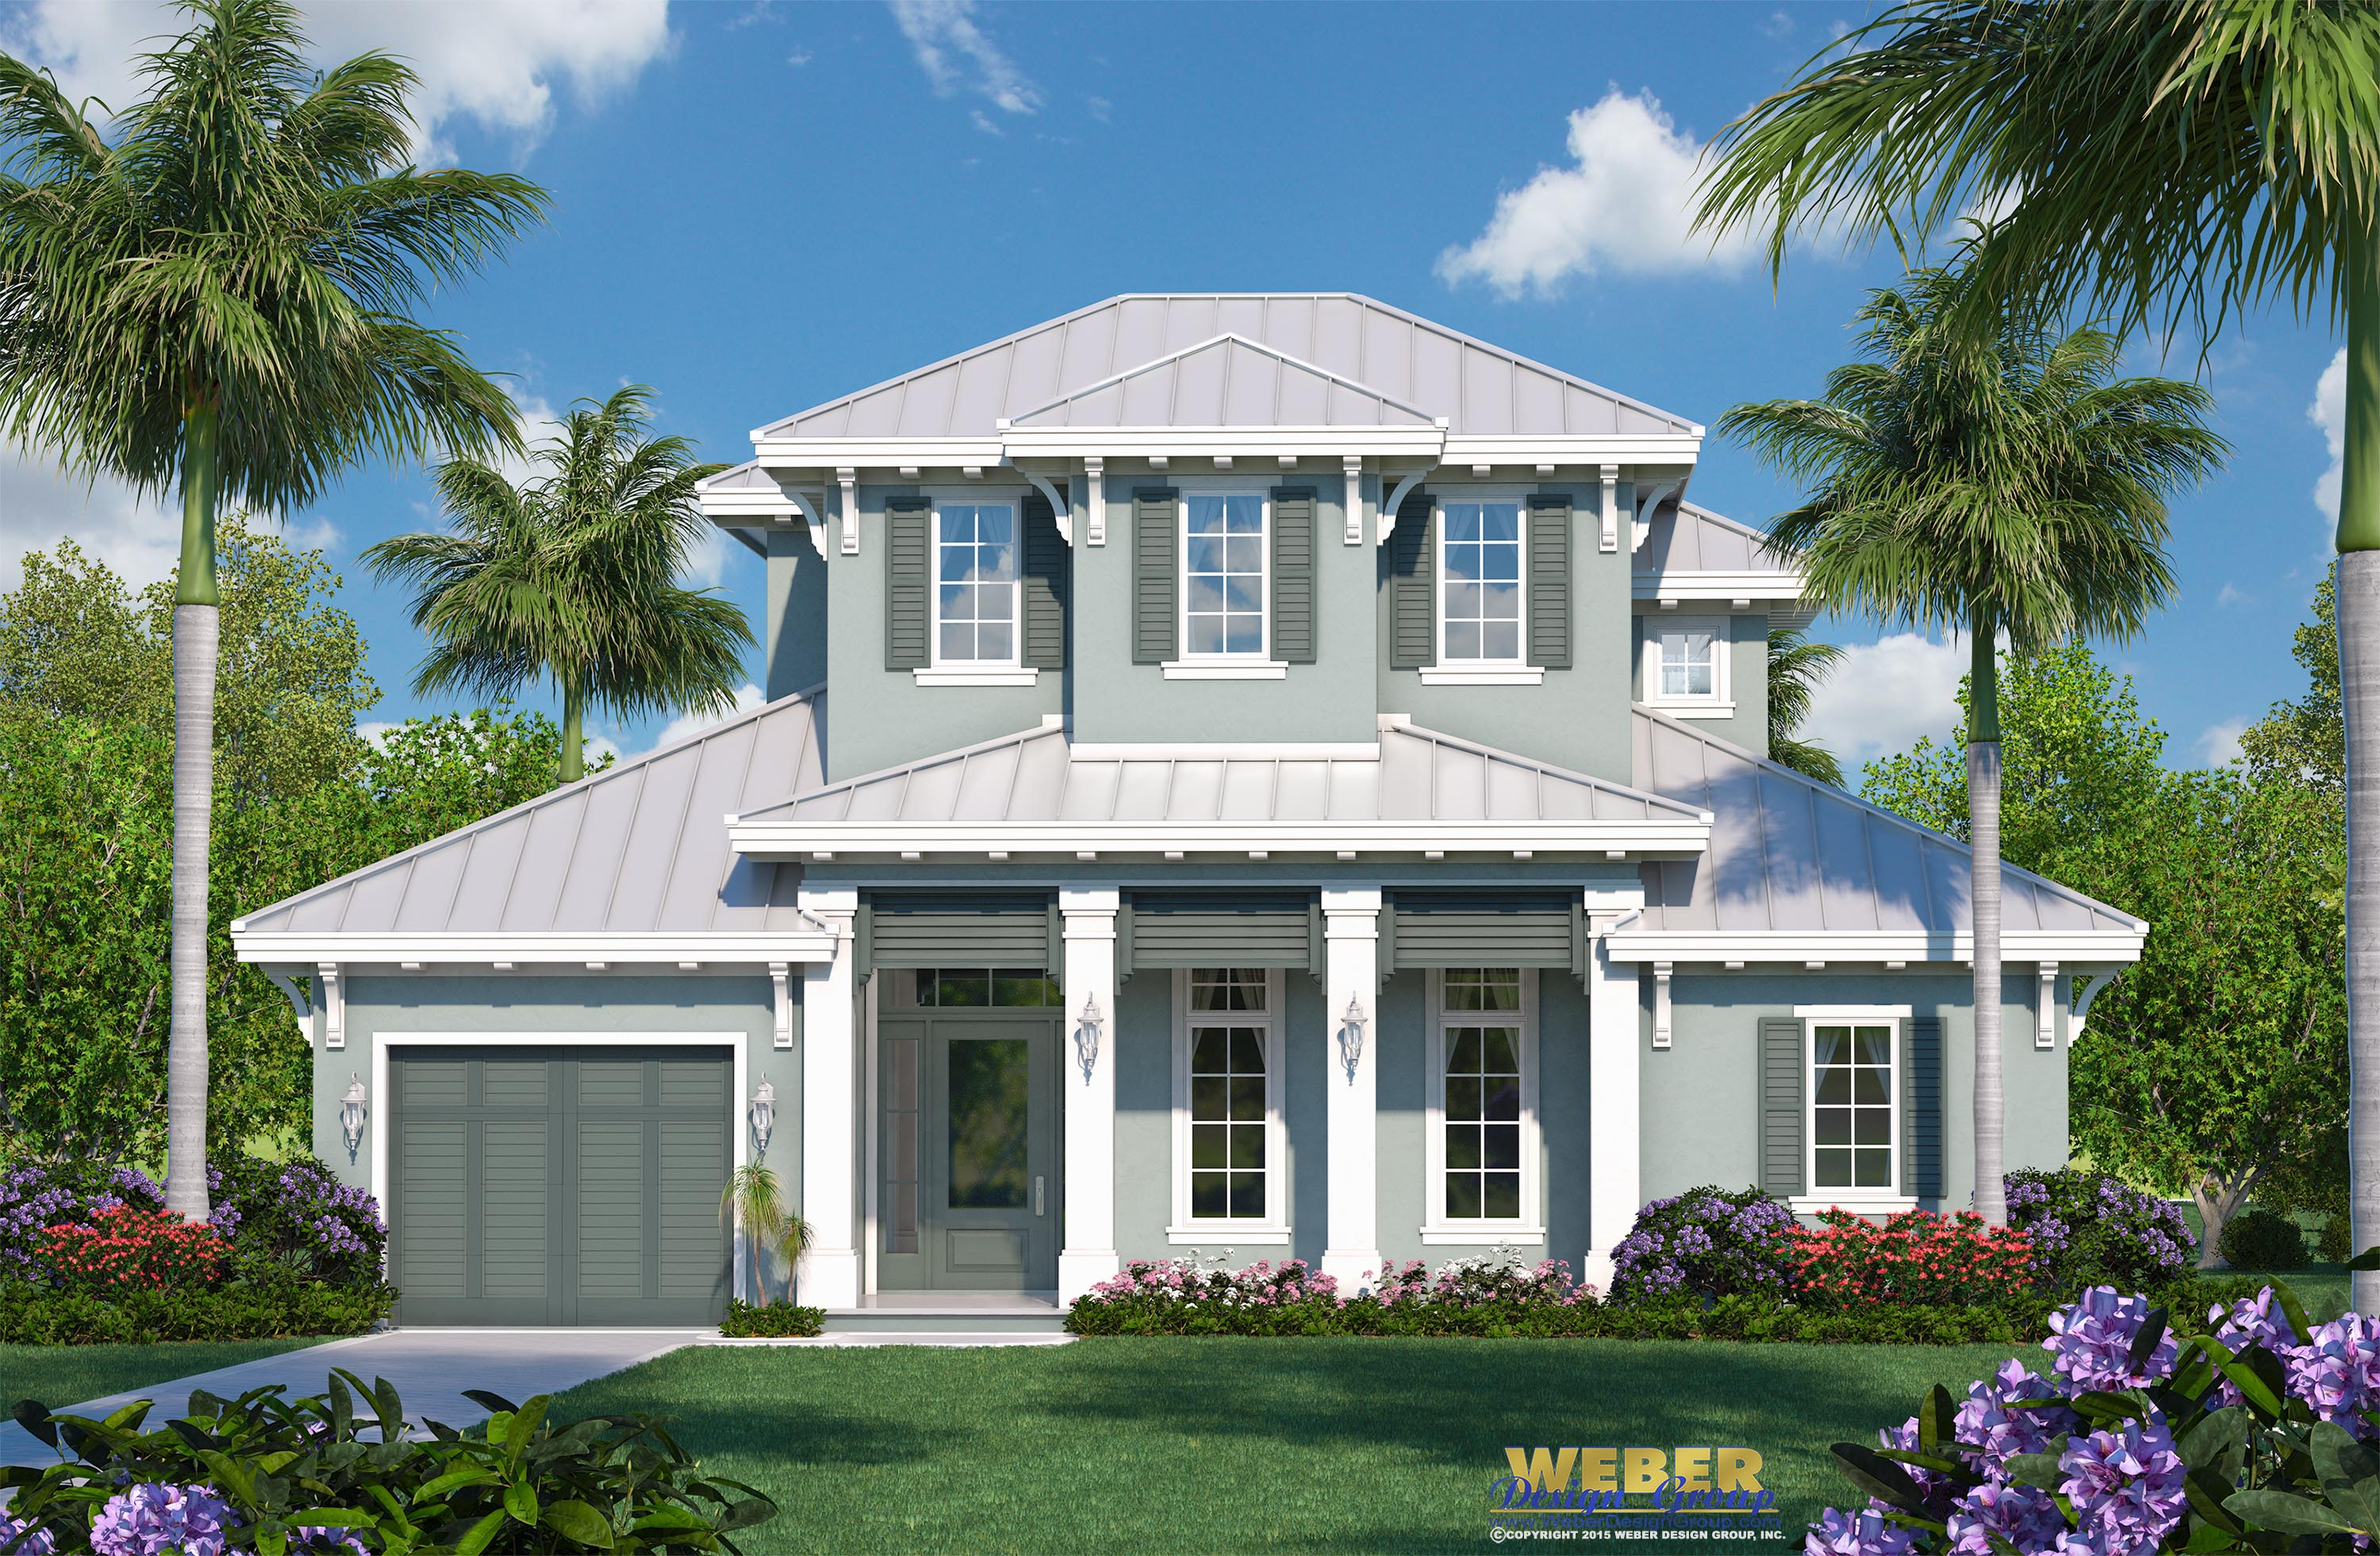 the tybee island model is a two story beach house plan that offers an easy breezy florida coastal architectural style and an open layout that flows - Florida Coastal House Plans